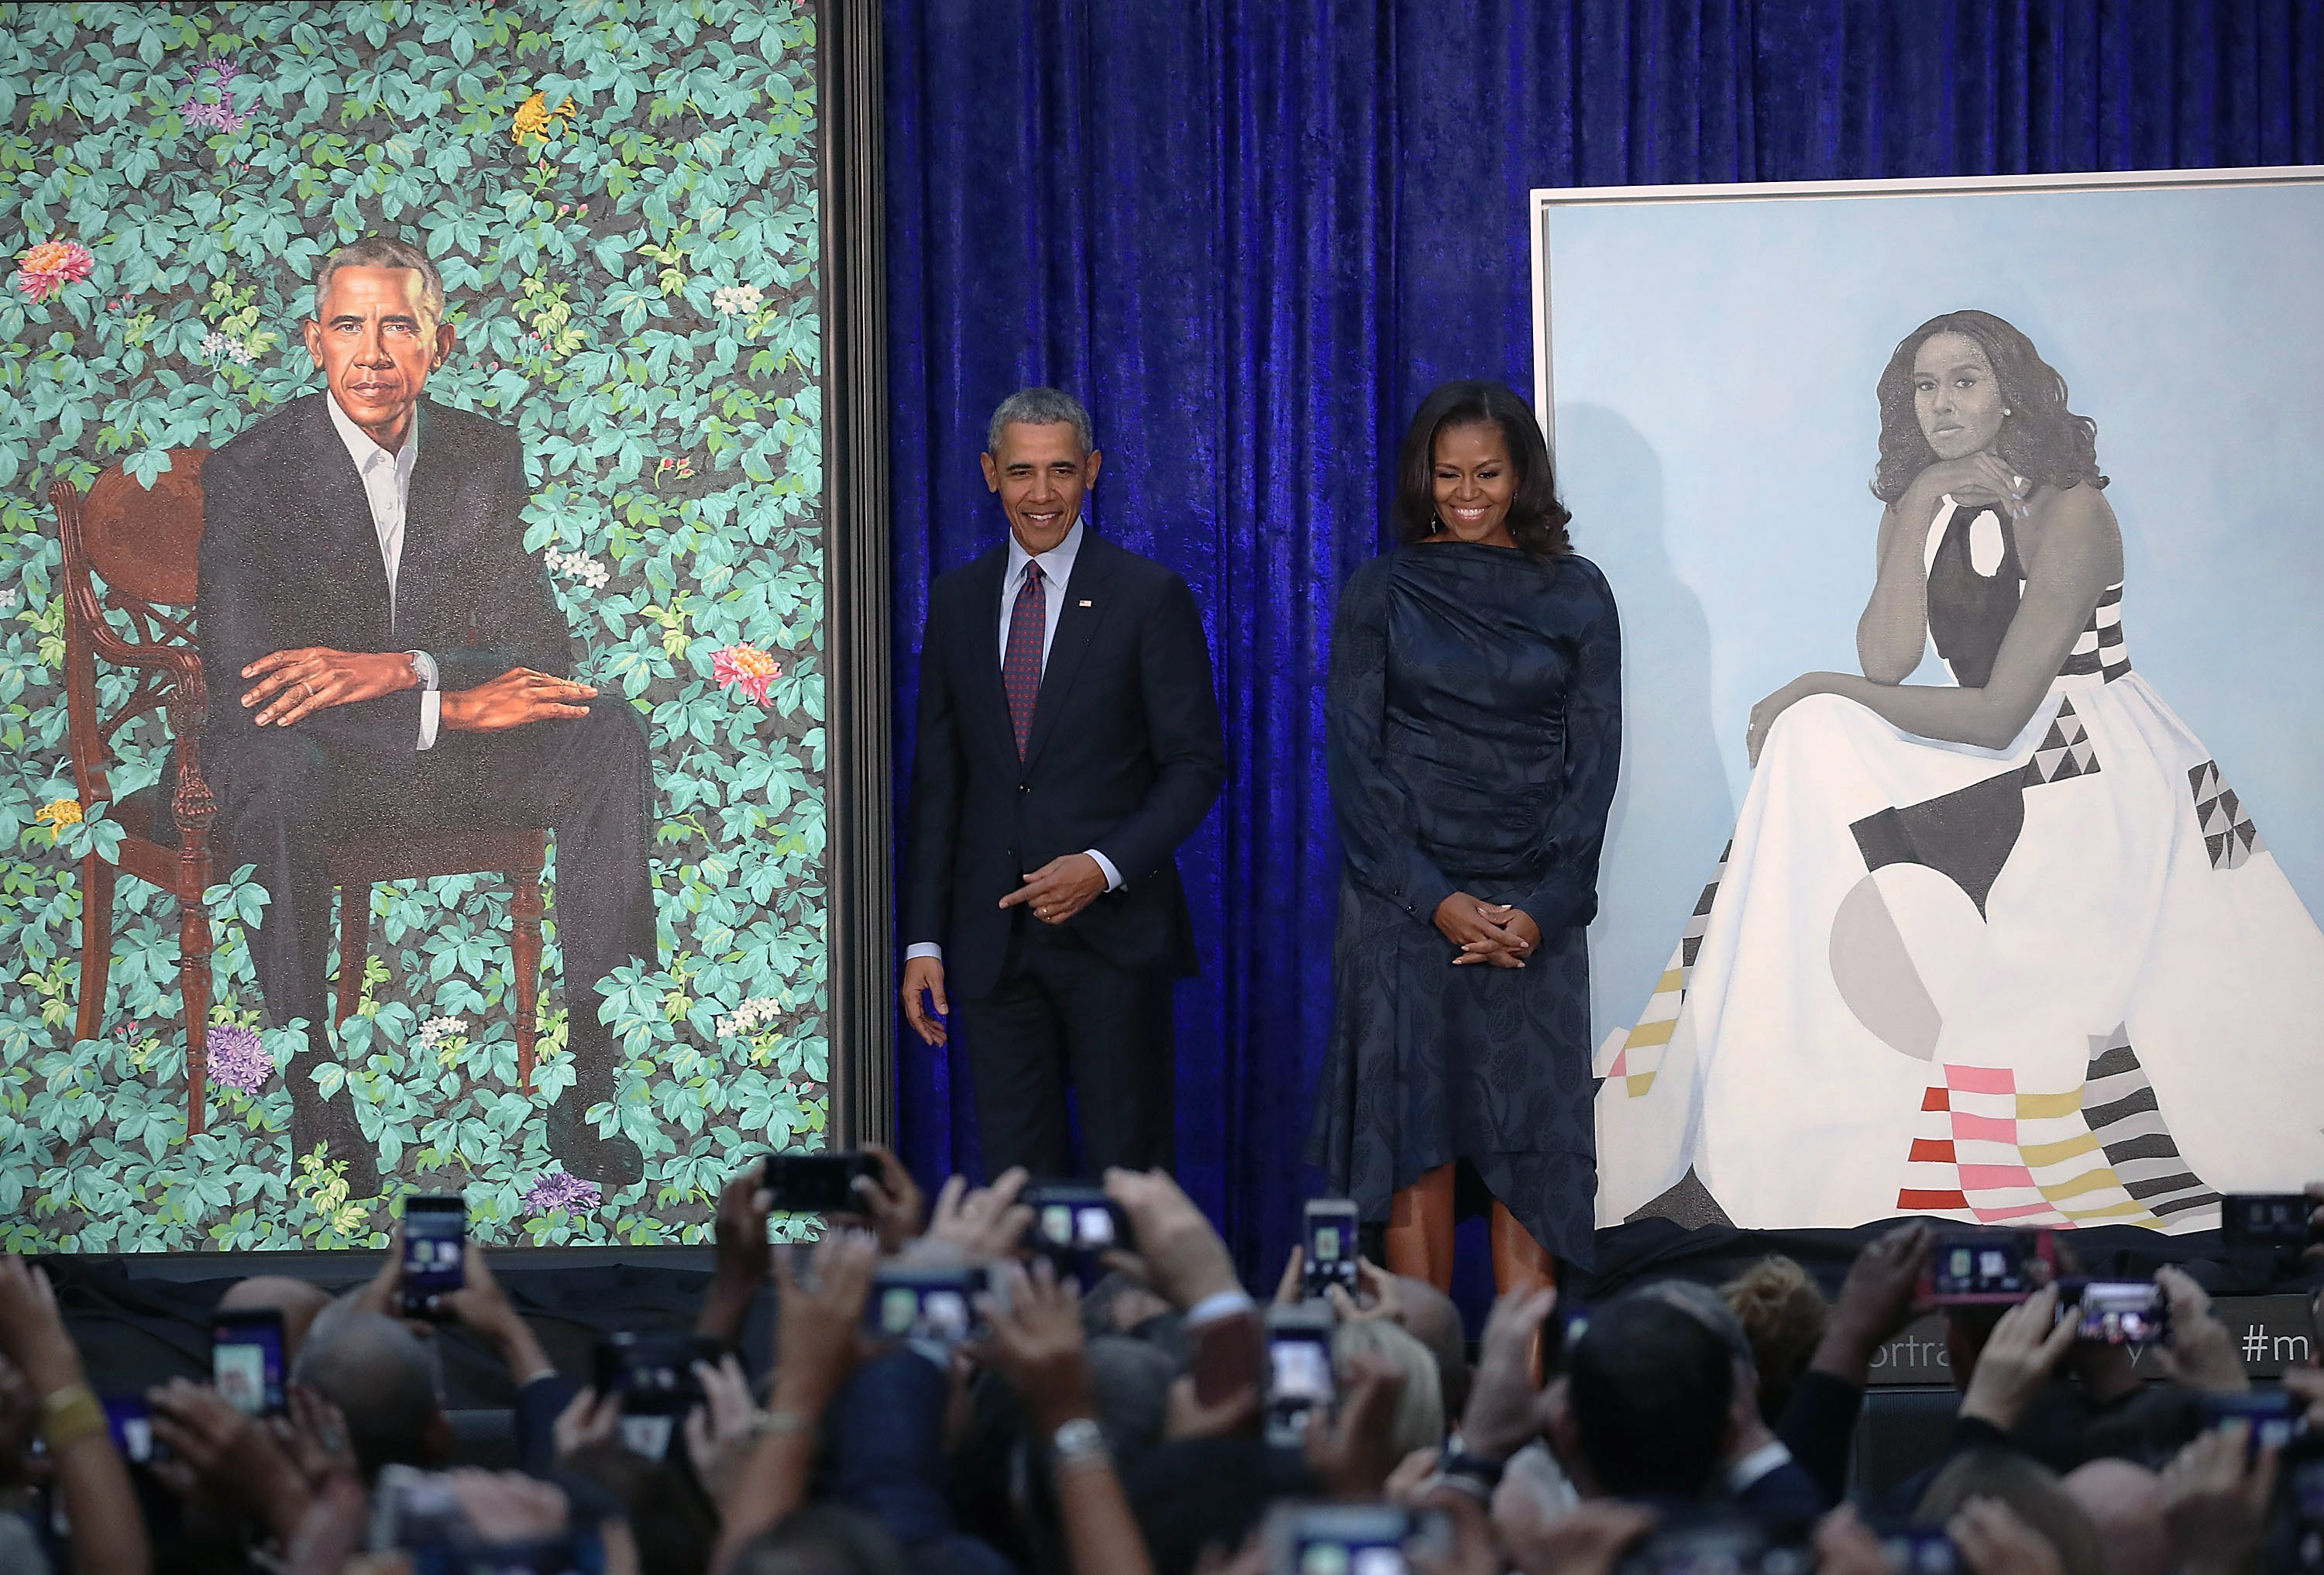 Former U.S. President Barack Obama and former first lady Michelle Obama stand next to their newly unveiled portraits during a ceremony at the Smithsonian's National Portrait Gallery, on February 12, 2018 in Washington, DC. The portraits were commissioned by the Gallery, for Kehinde Wiley to create President Obama's portrait, and Amy Sherald that of Michelle Obama (Getty Images)